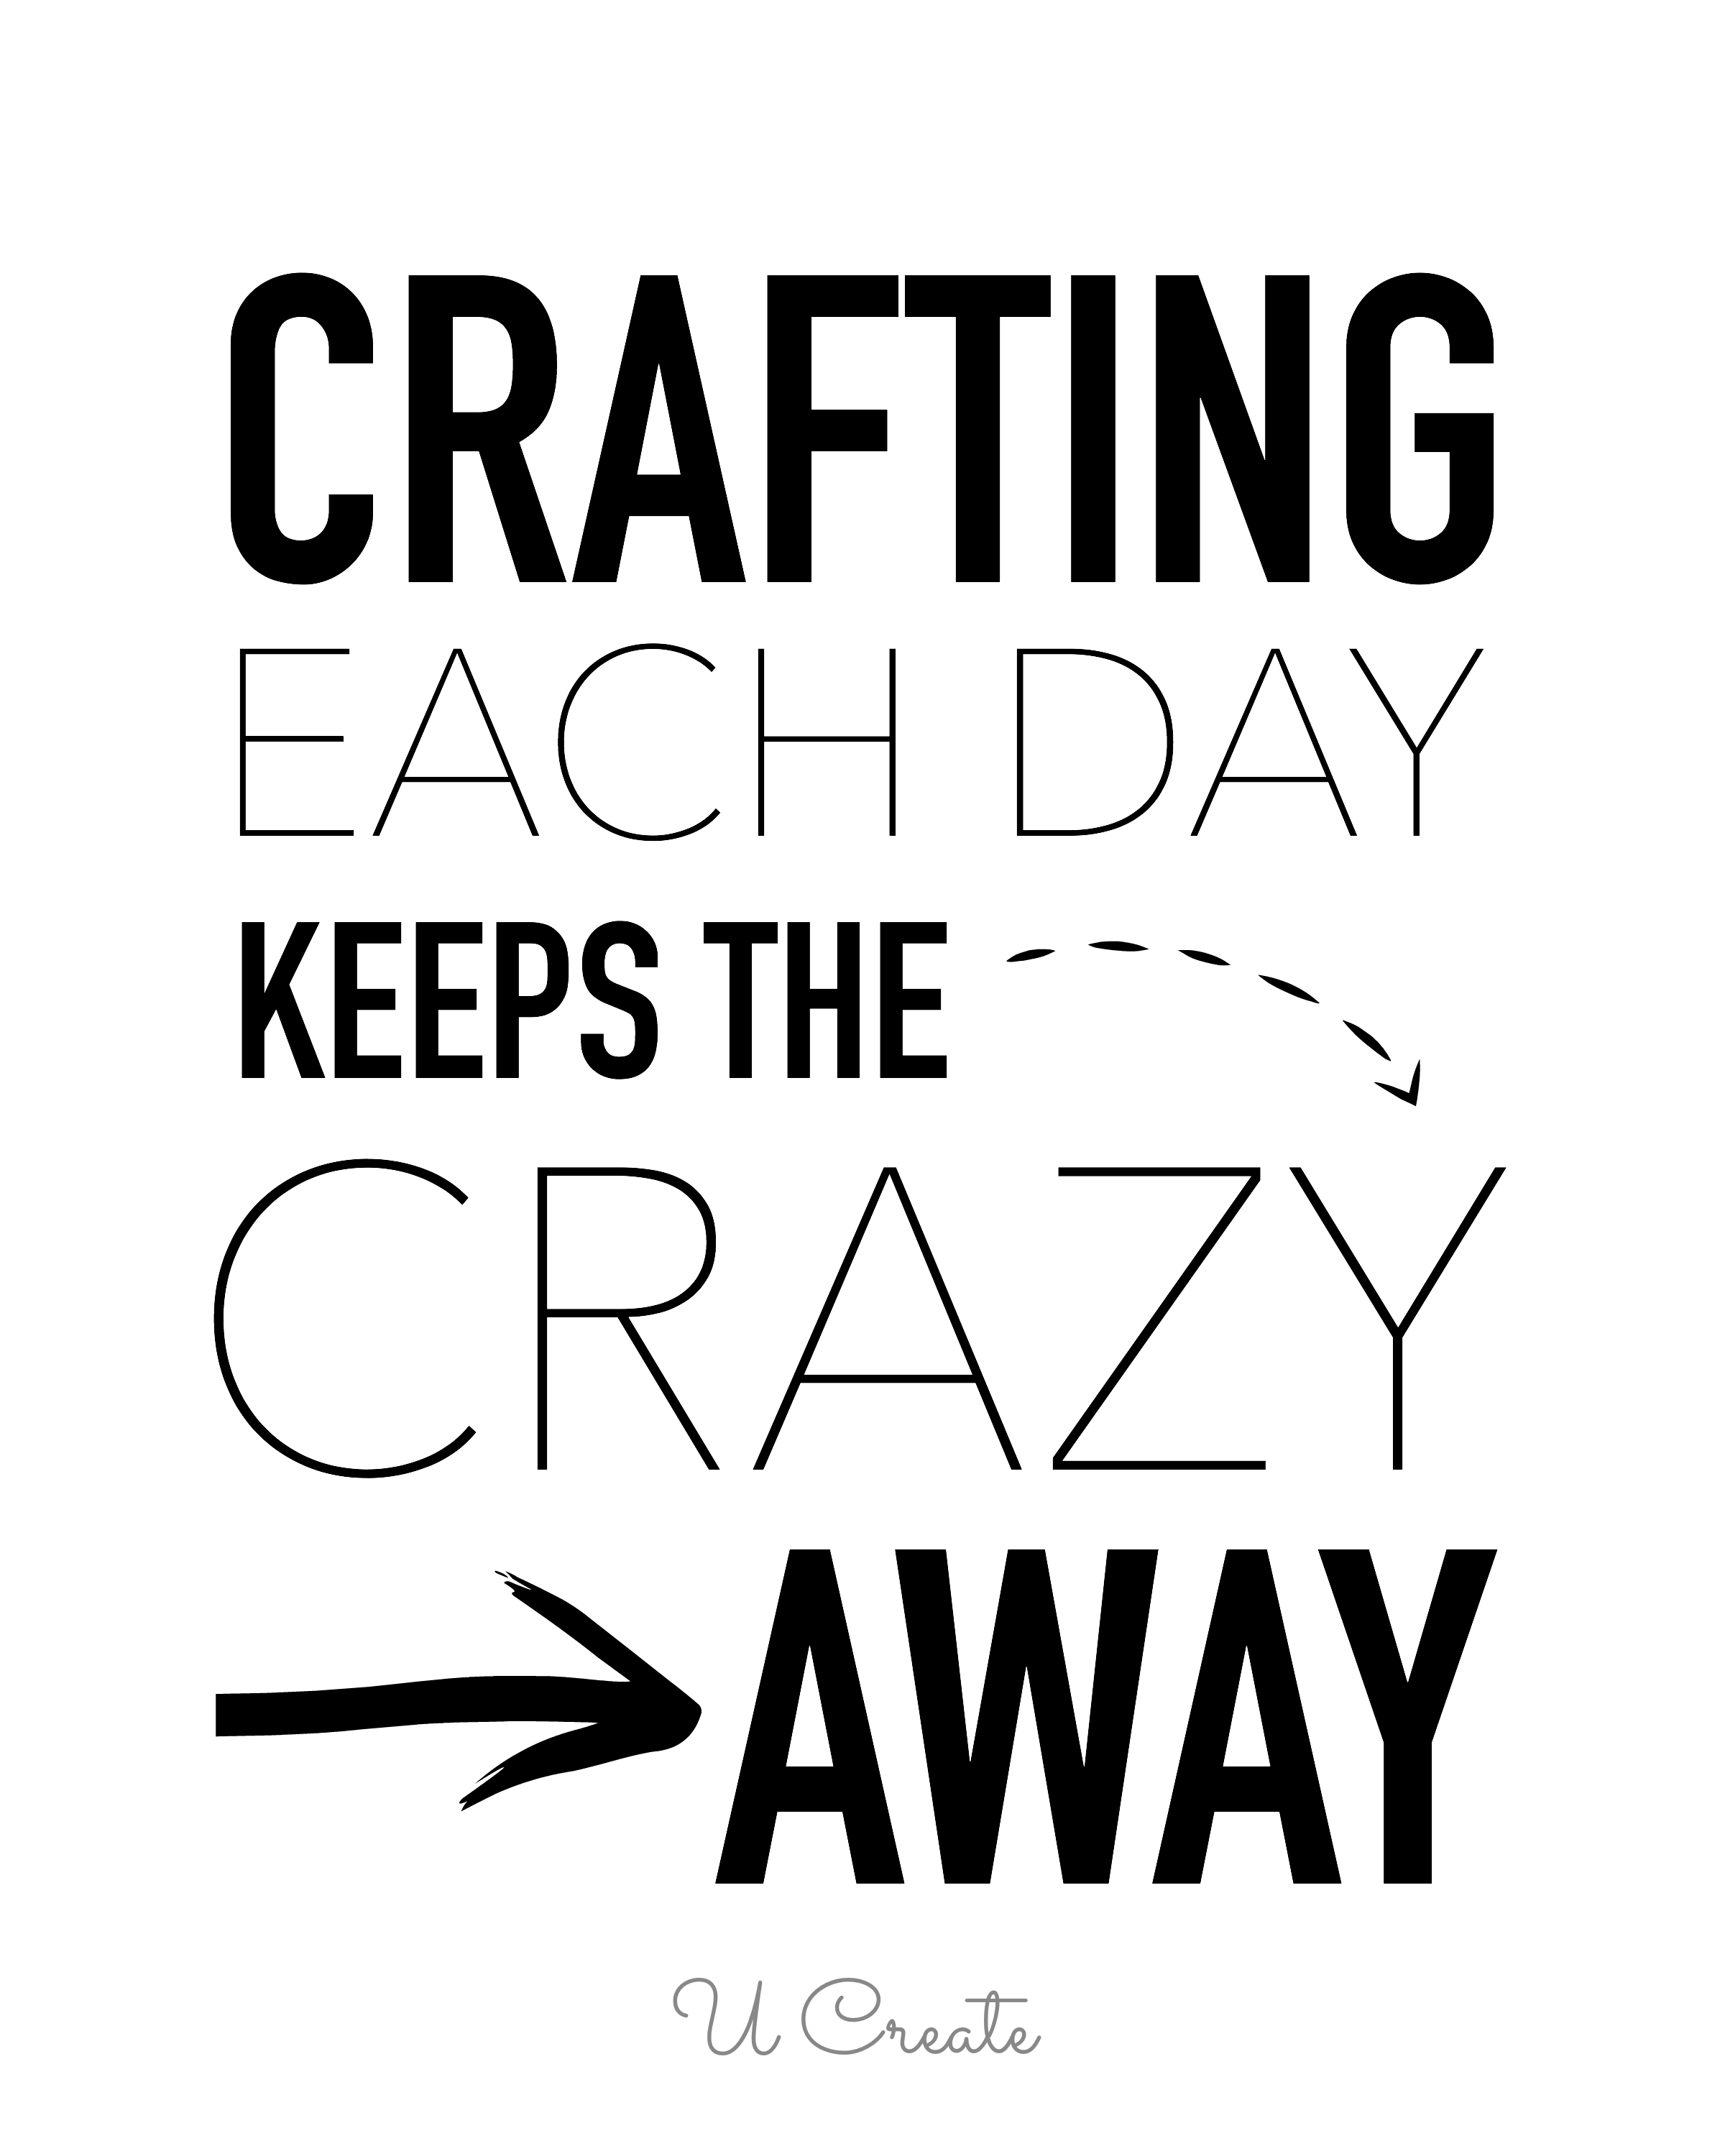 Crafting Each Day! | Crafting quotes funny, Craft quotes ...